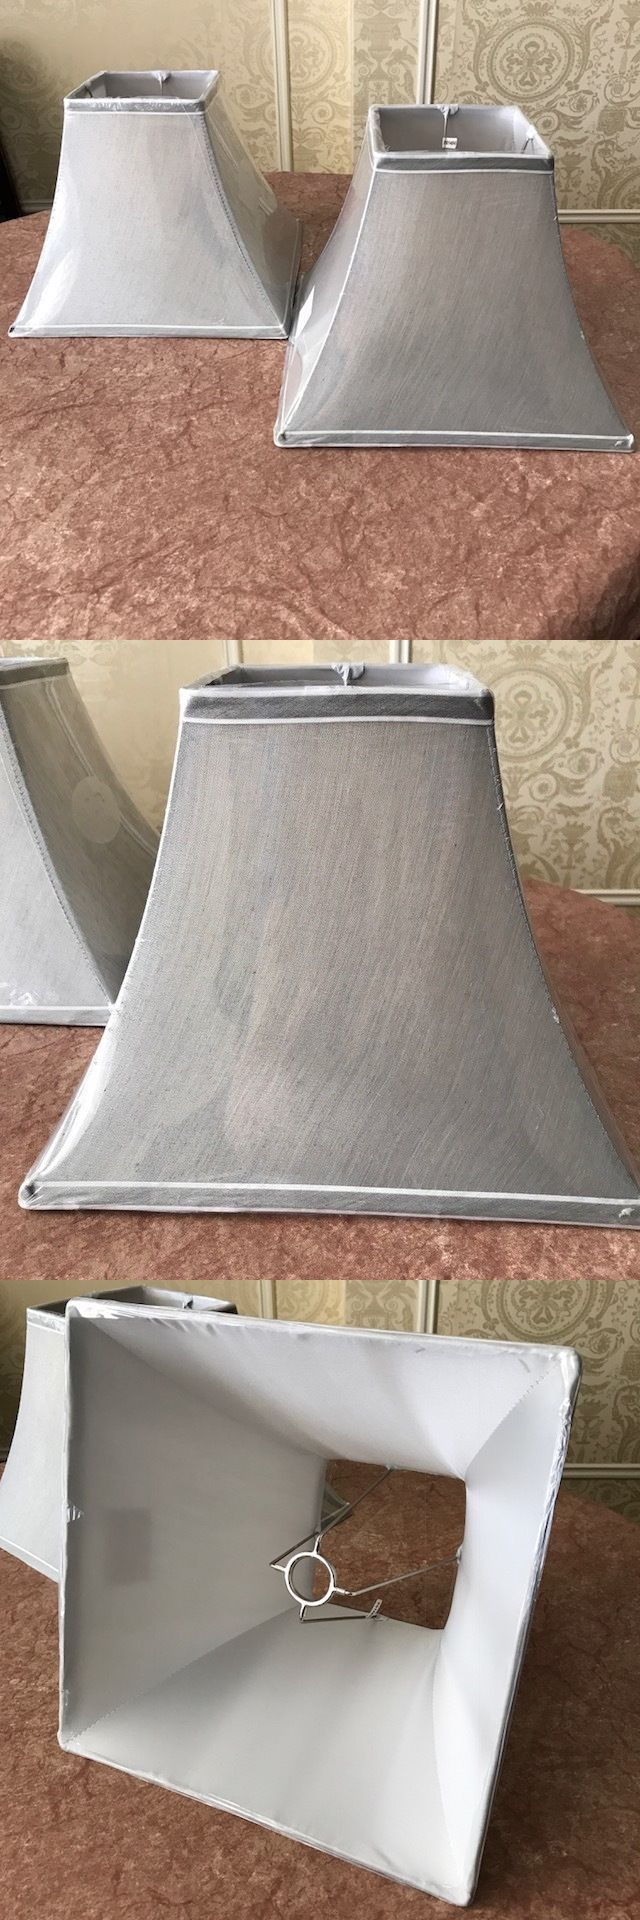 Square bedside lamp shades better lamps square lamp shades - Lamp Shades 20708 Pair Of 2 Silk Blend Square Lamp Shades Gray Grey